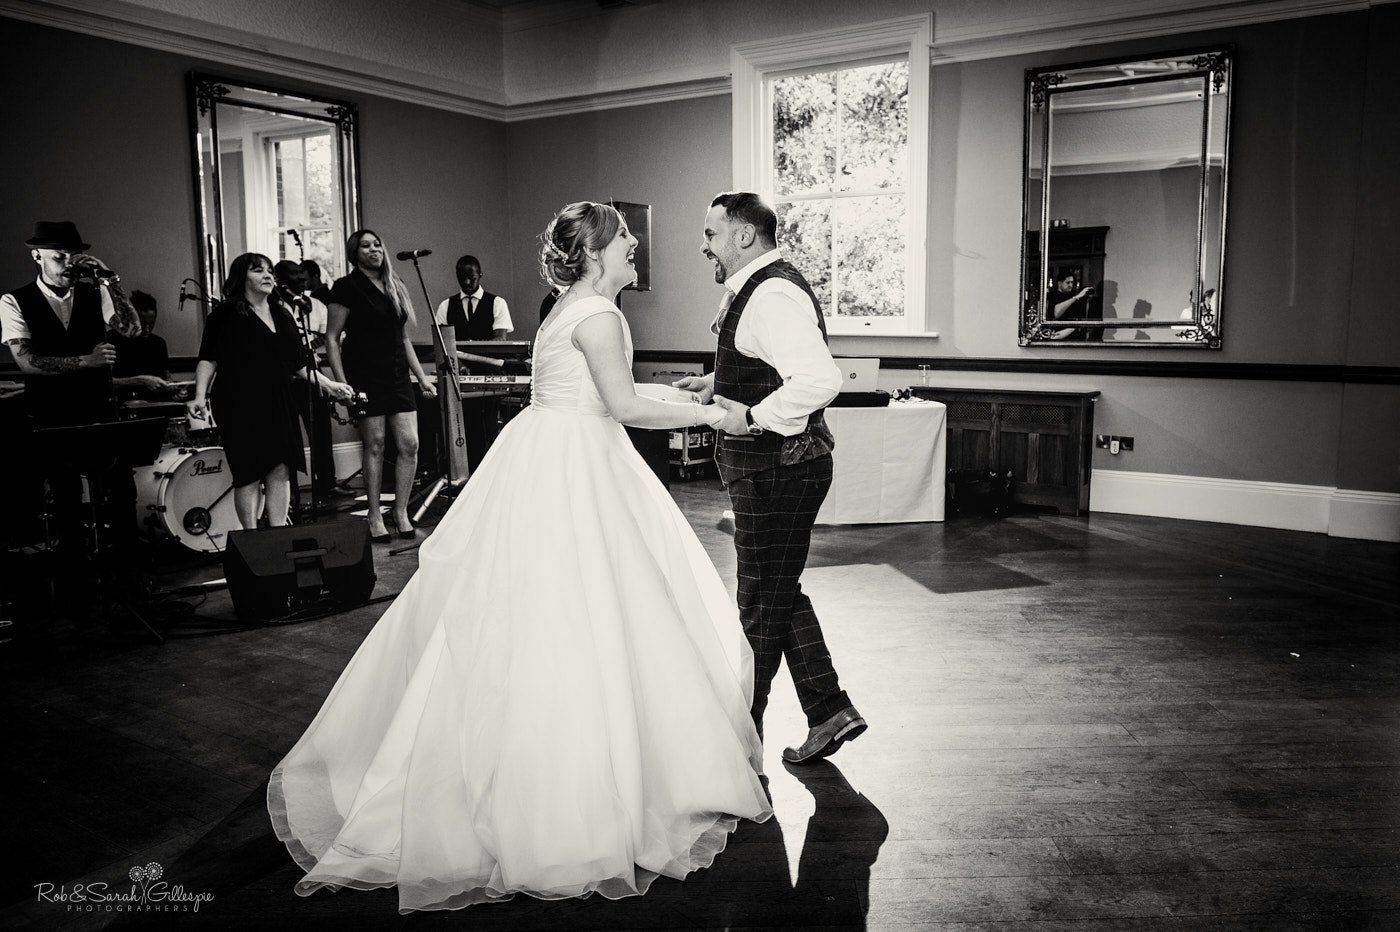 First dance at Pendrell Hall wedding